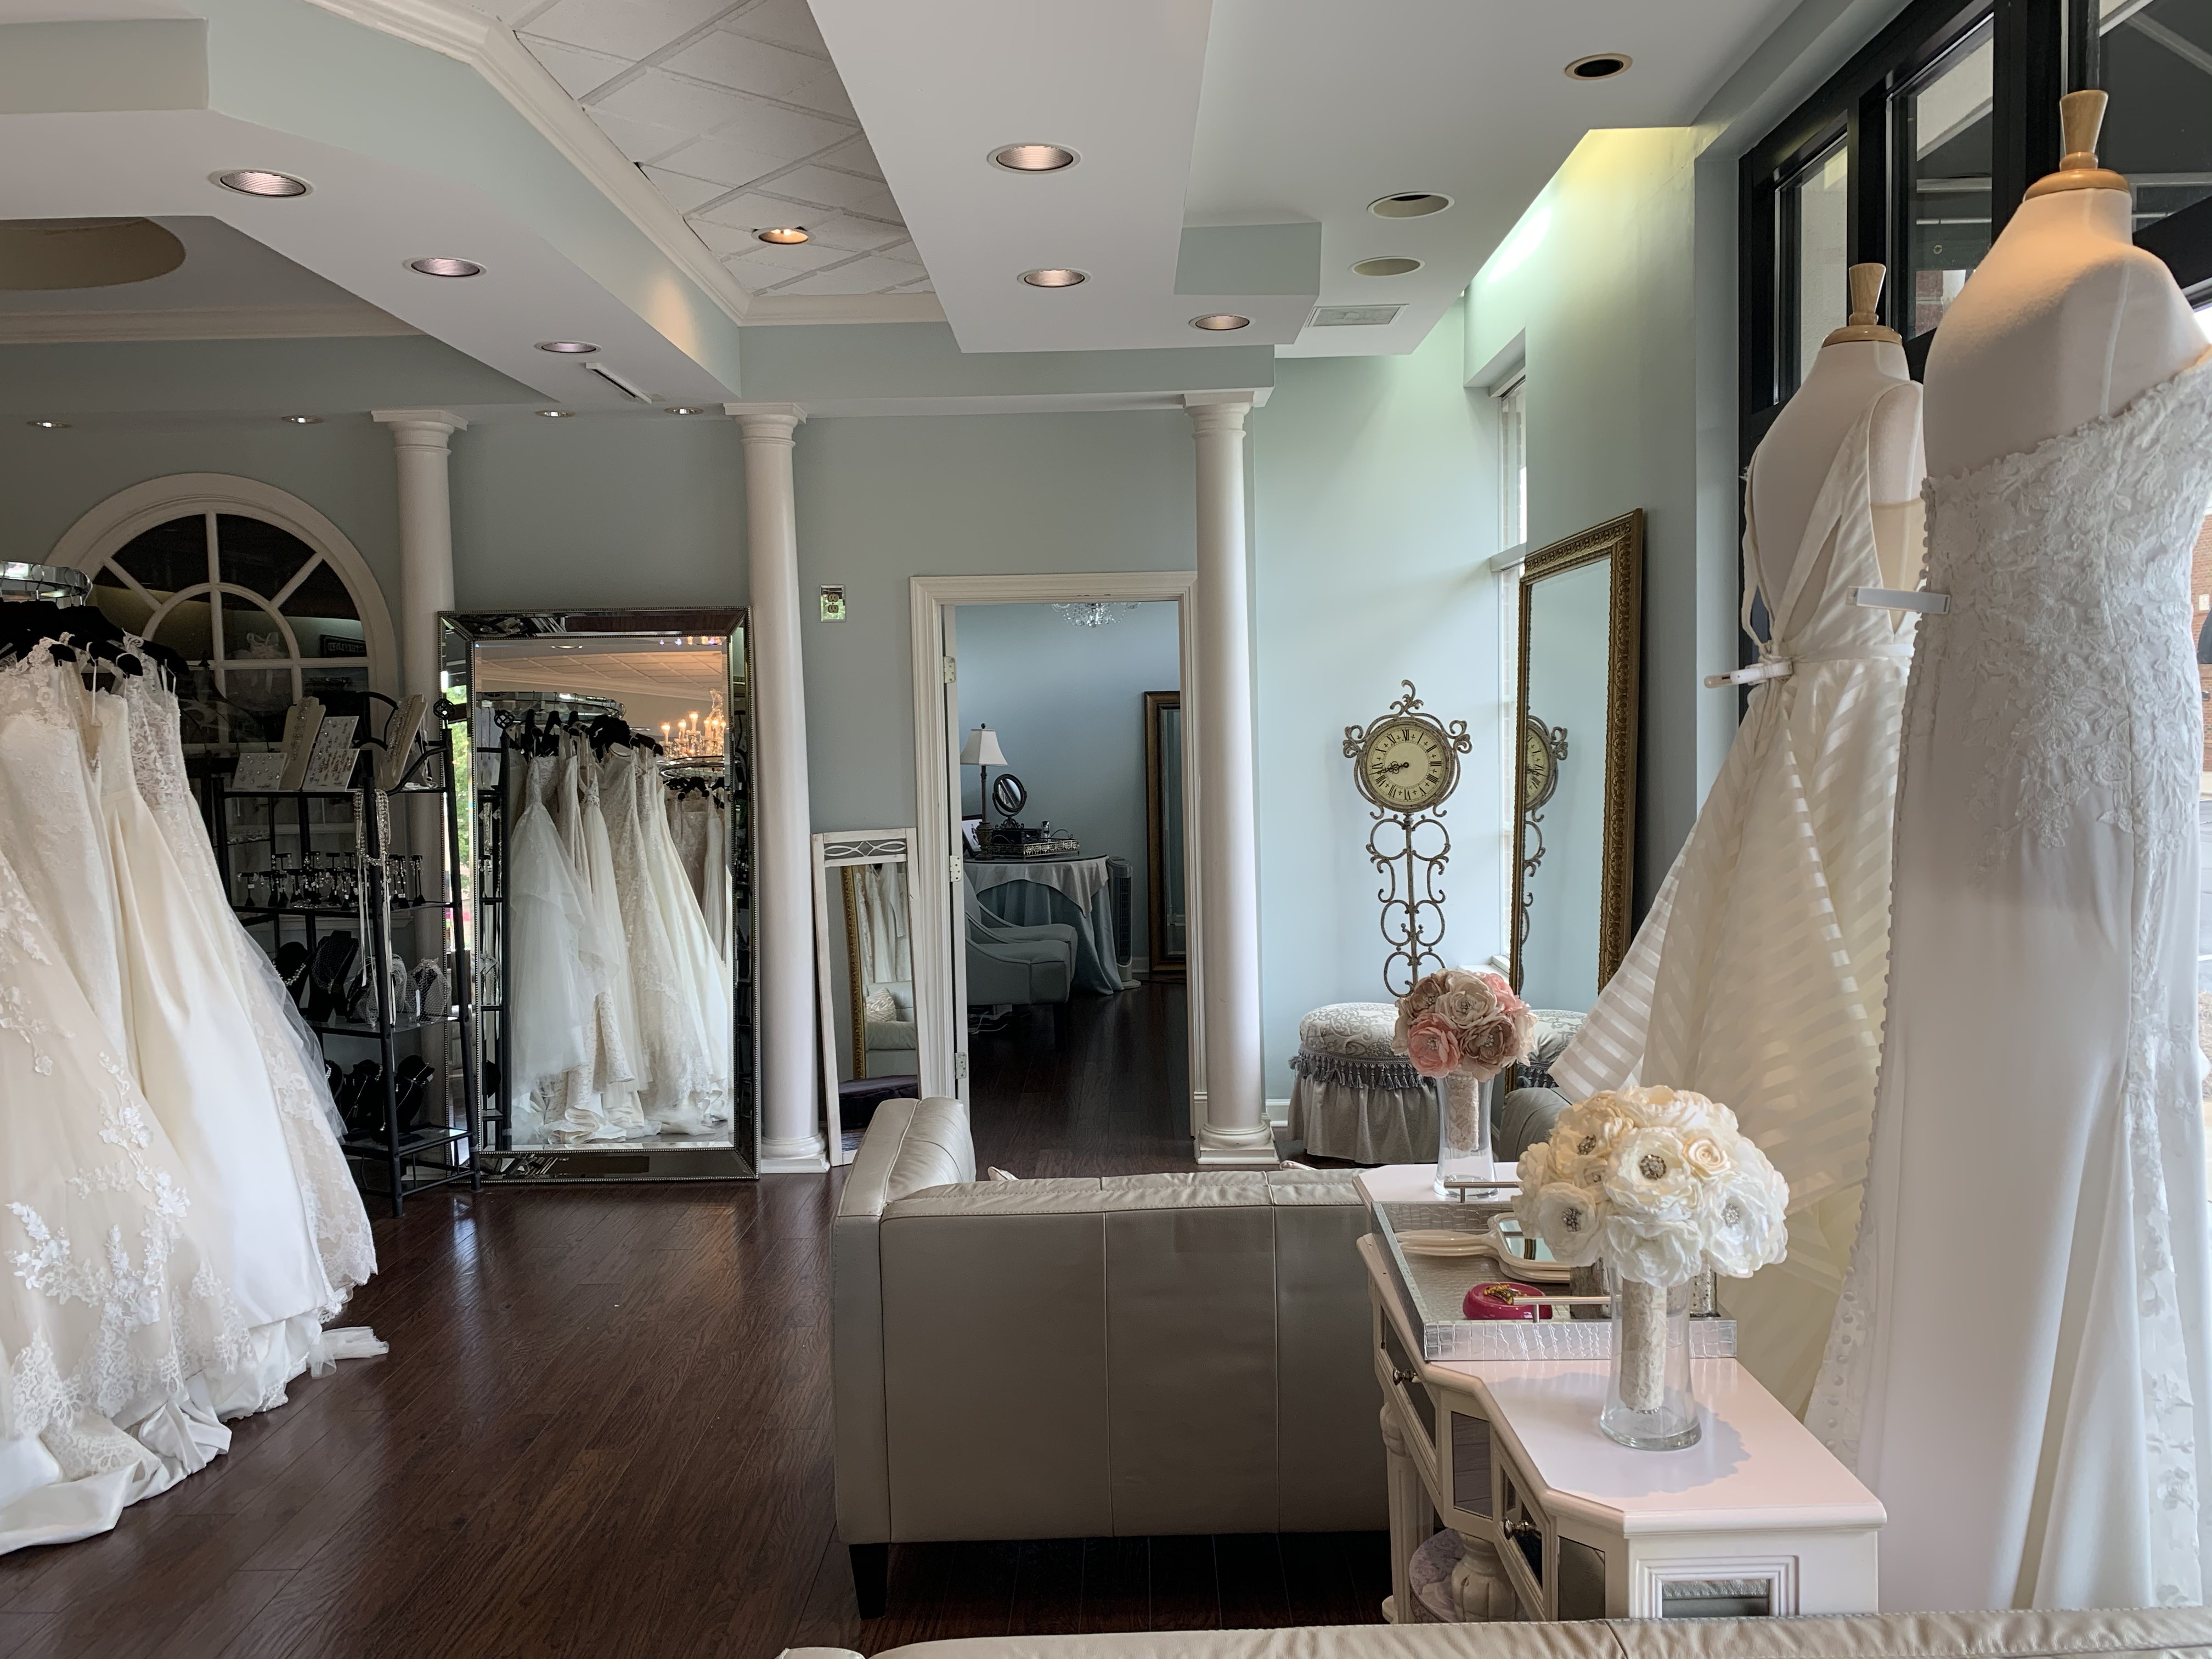 Lily Rose Bridal interior photo